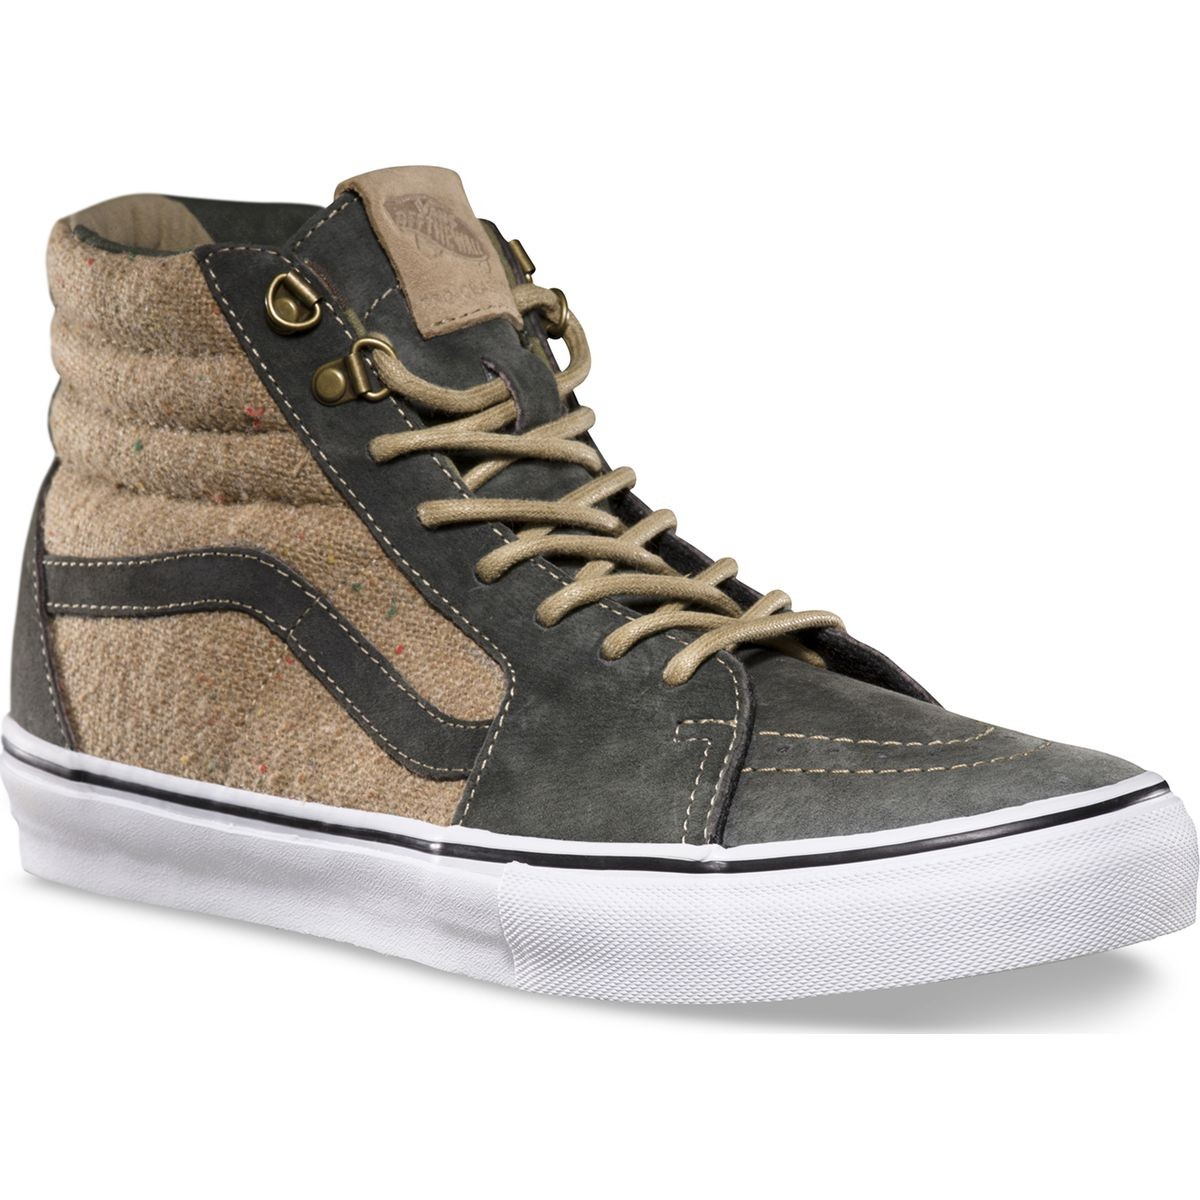 Vans Outdoor Sk8-Hi Pro Shoes - Dark Military / Tan